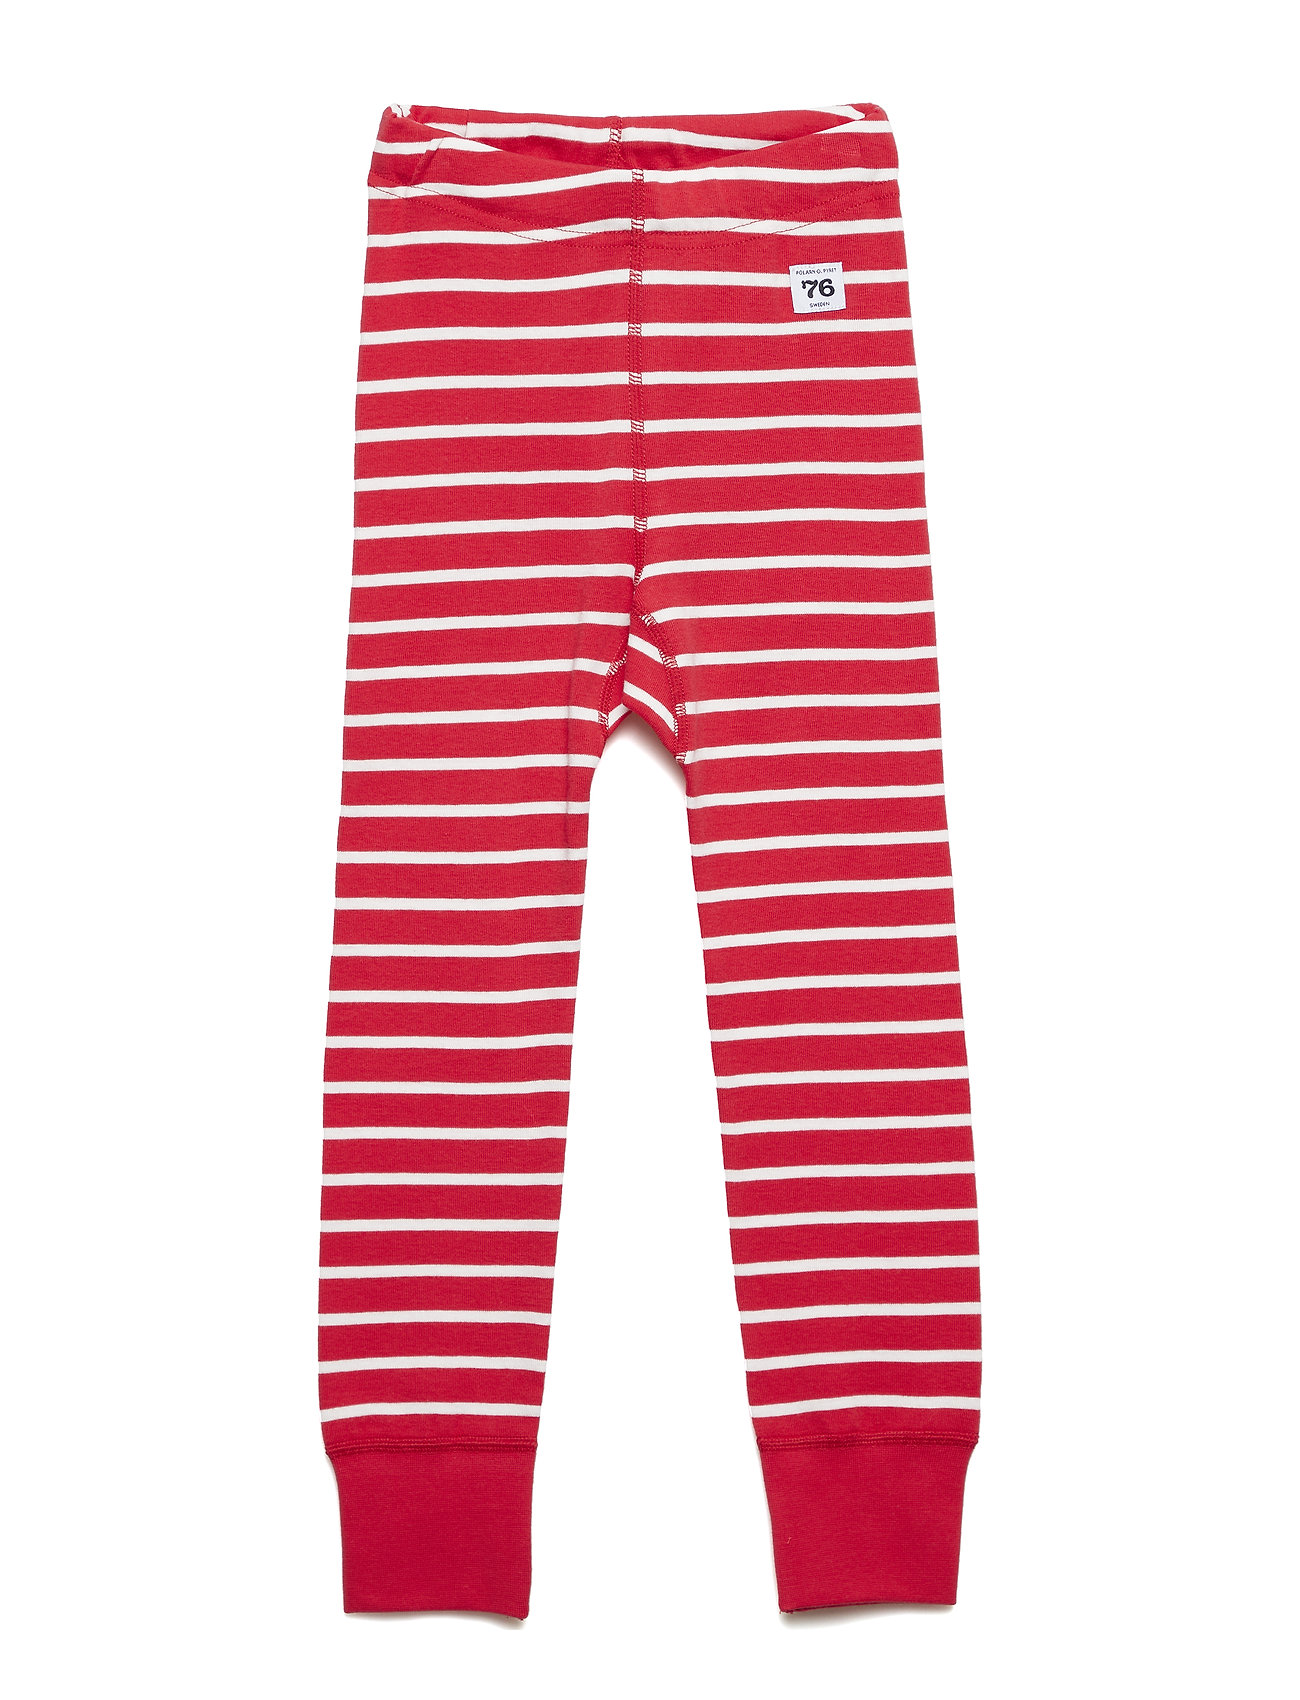 Polarn O. Pyret Long Johns PO.P Stripe - SKI PATROL